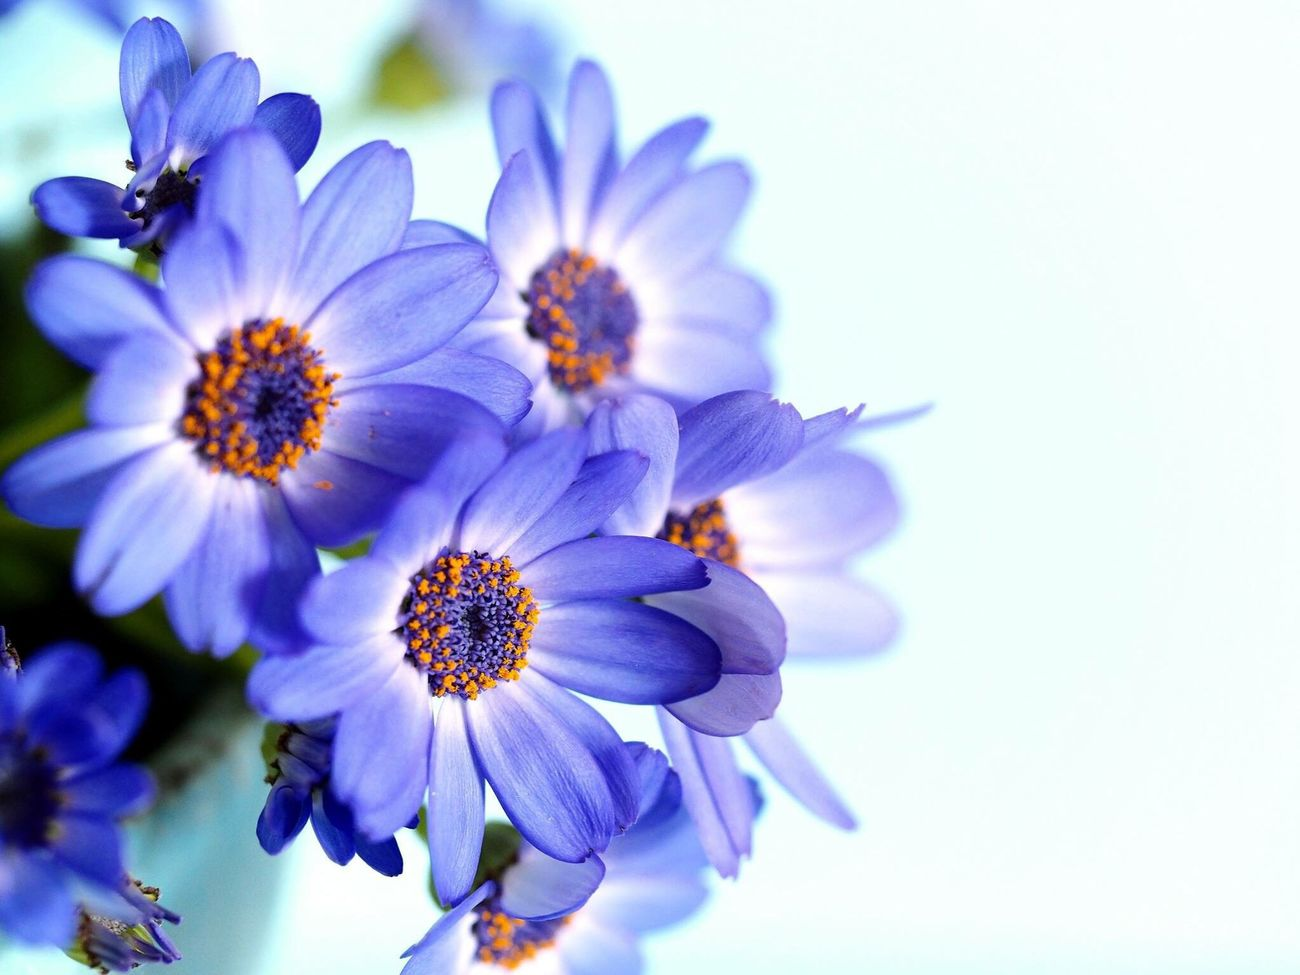 サイネリア Cineraria Blue Blueflower Flower Collection Bluecolor